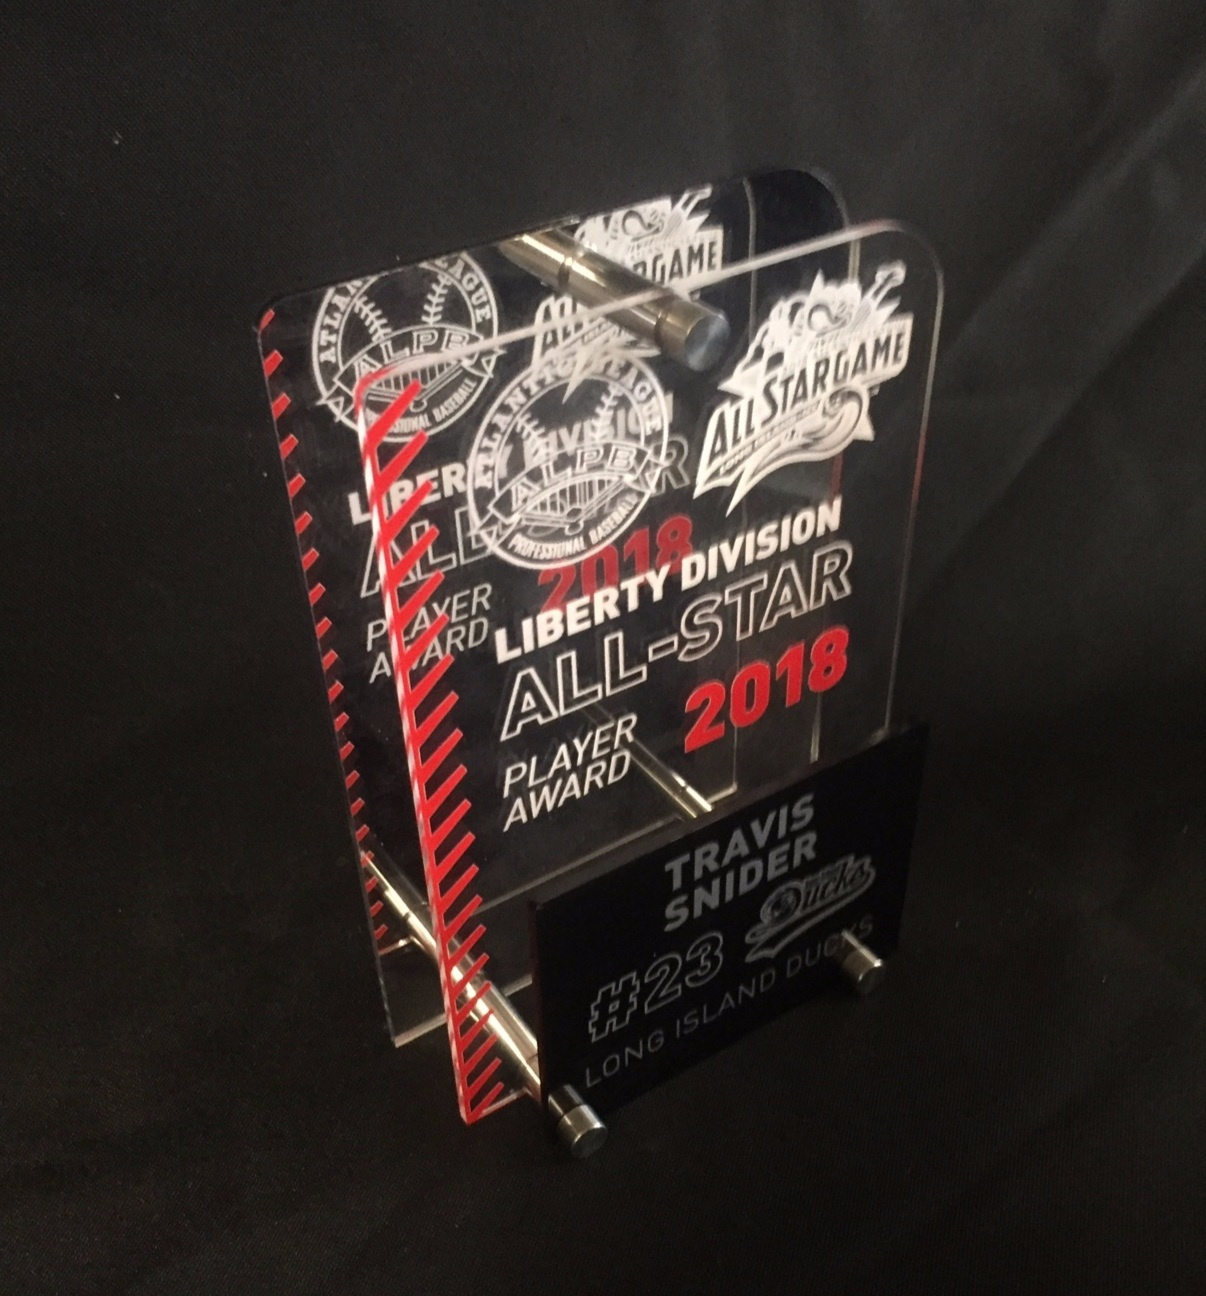 ALPB - Liberty Division All-Star Award  Contact us for pricing information.